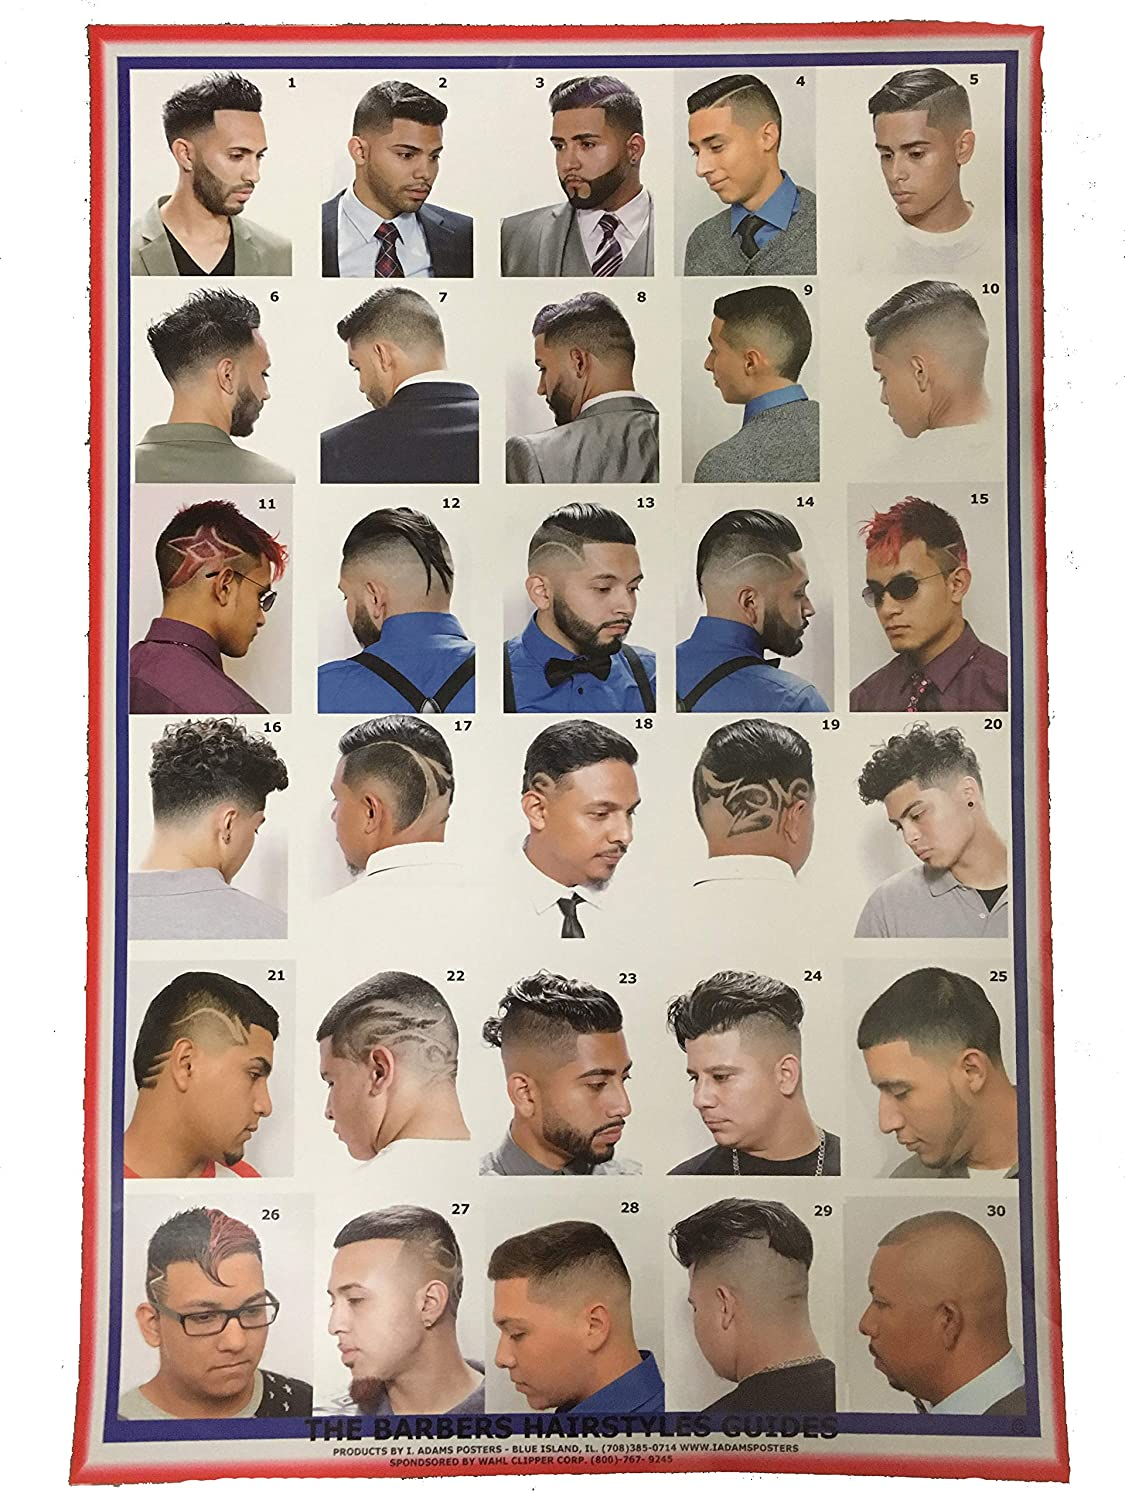 2015HMLike A Boss Barber Poster with 30 Cuts for Men /& Boys